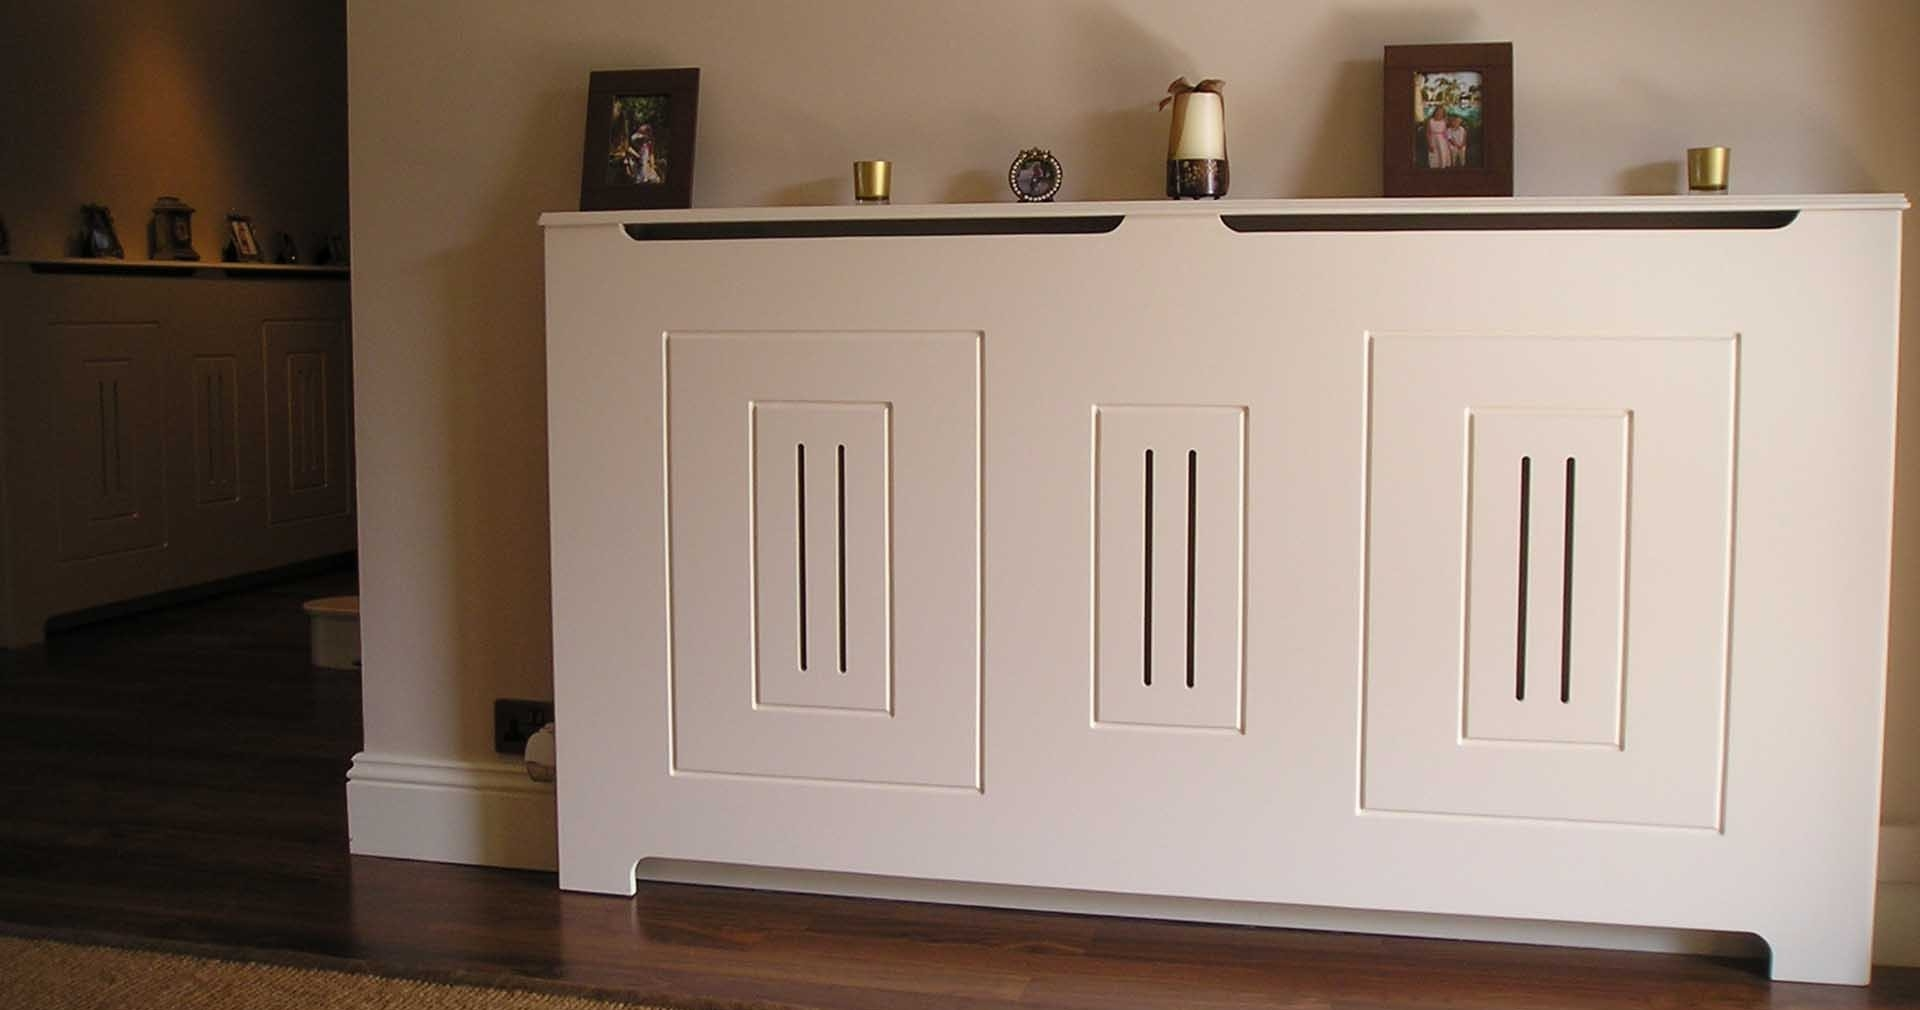 Custom Radiator Covers For Radiator Cupboards (View 5 of 15)